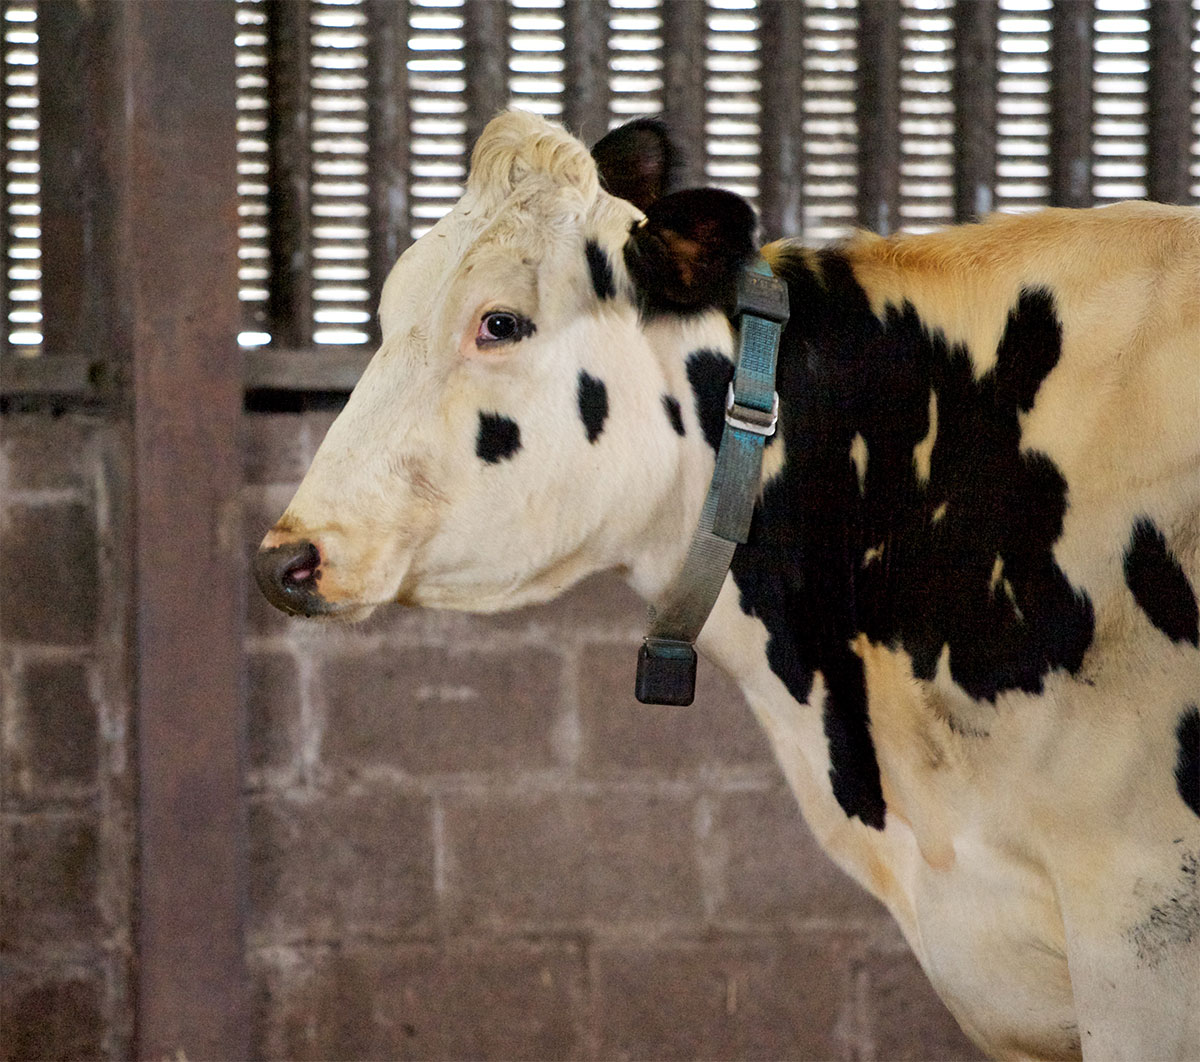 Data gathered from collar-mounted accelerometers can indicate early signs of illness, such as lameness, in individual cows. Image credit - Ivan Andonovic